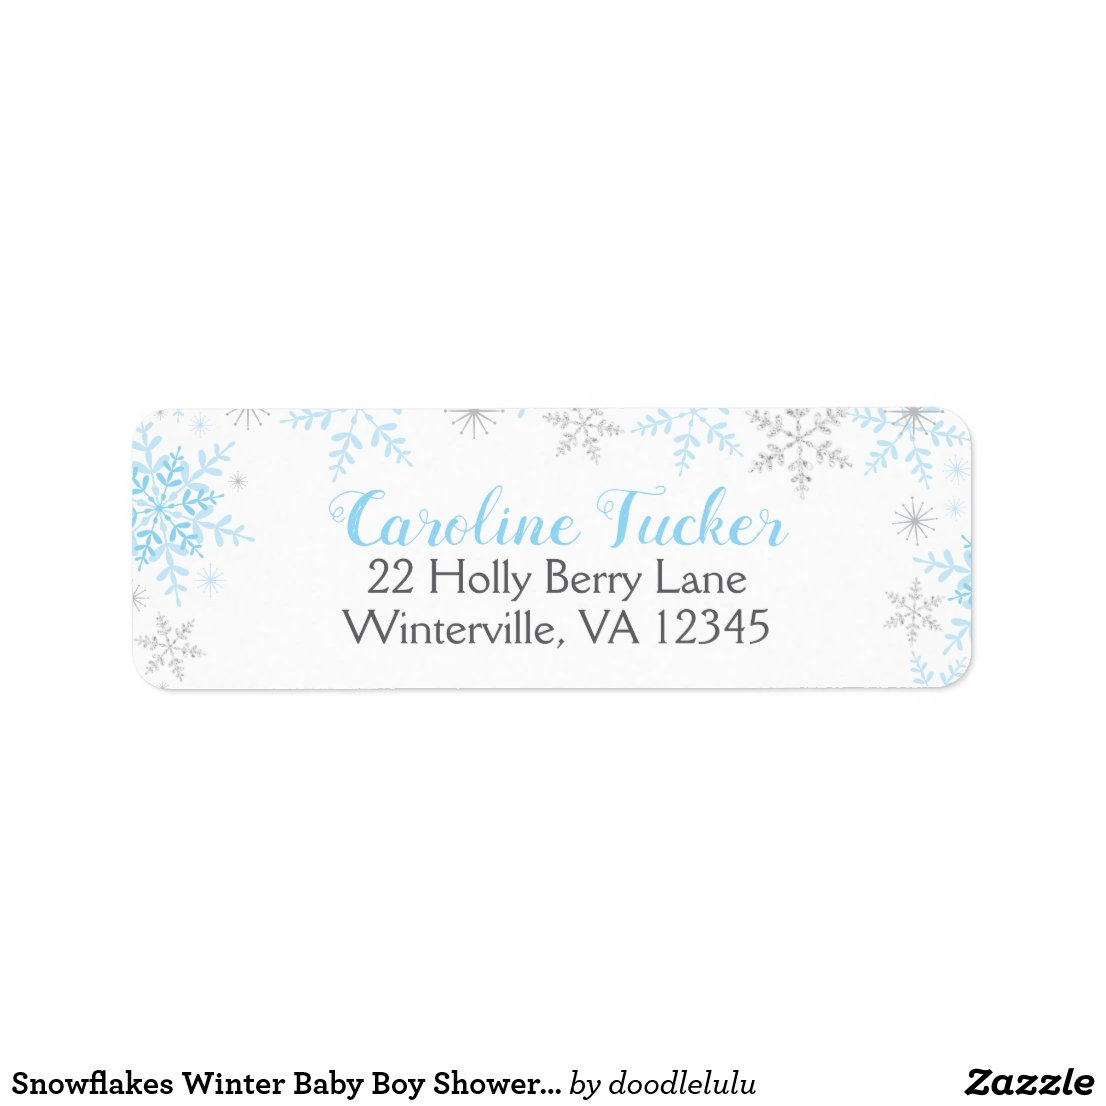 Snowflakes Winter Baby Boy Shower Blue Silver Label